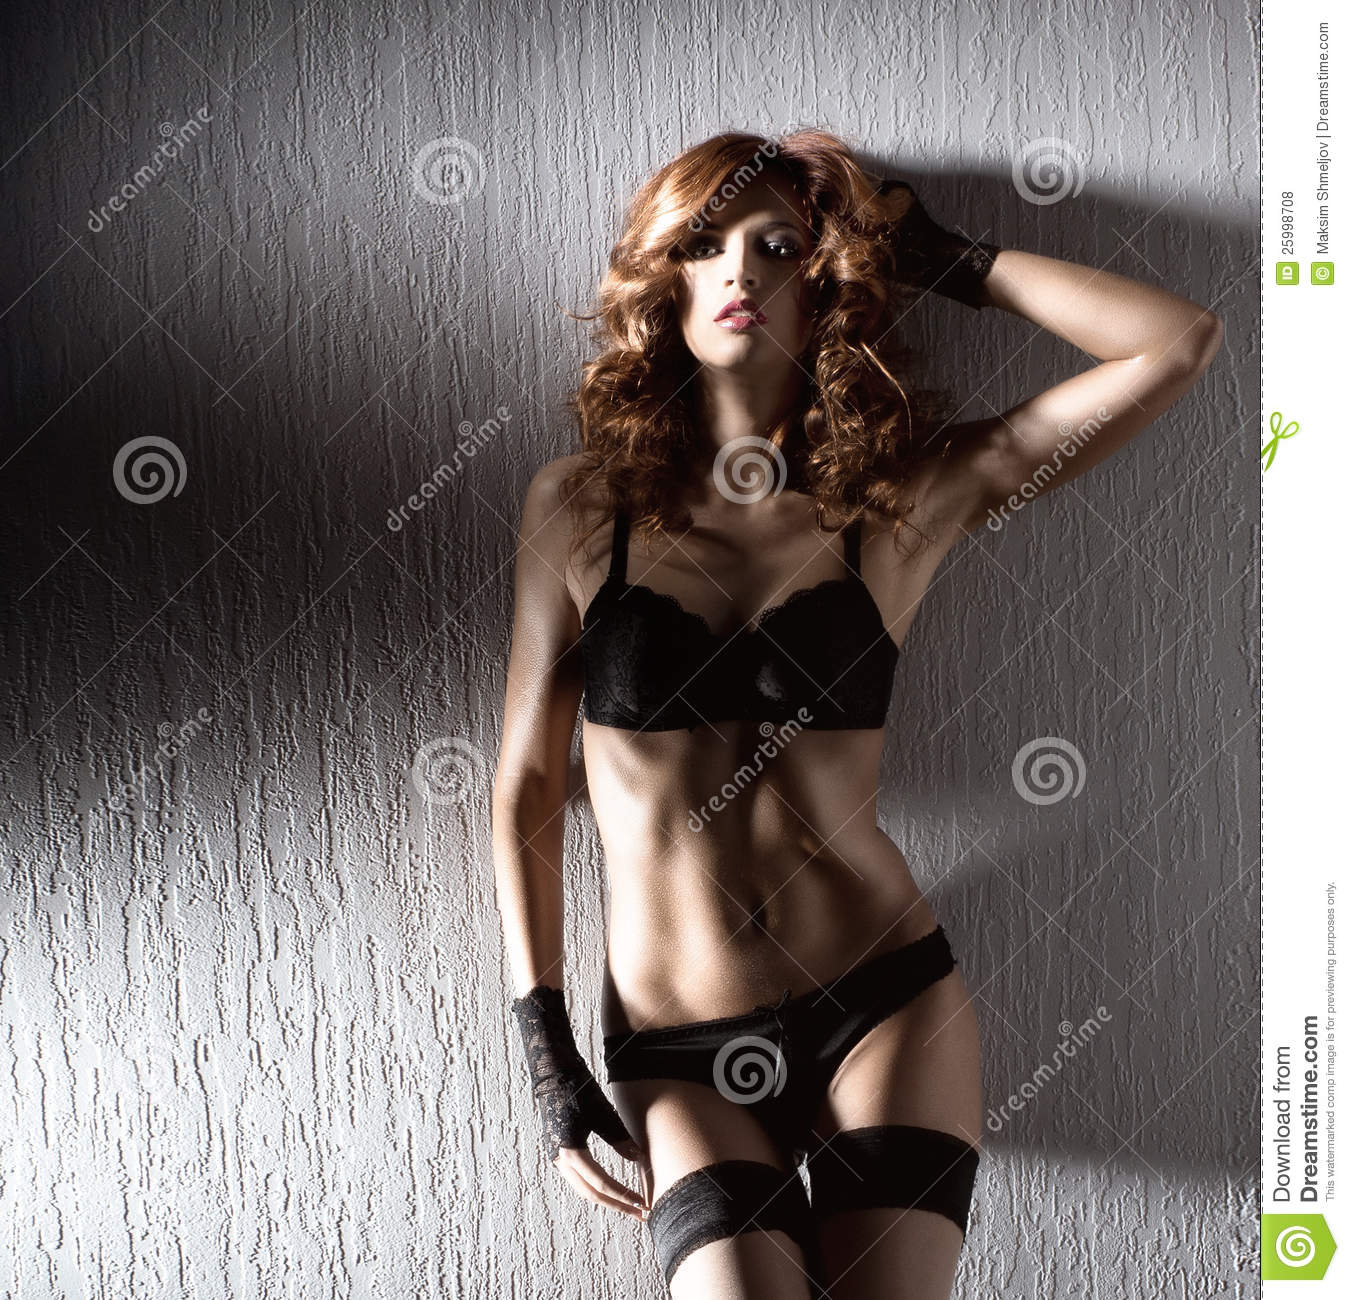 From redhead woman posing young